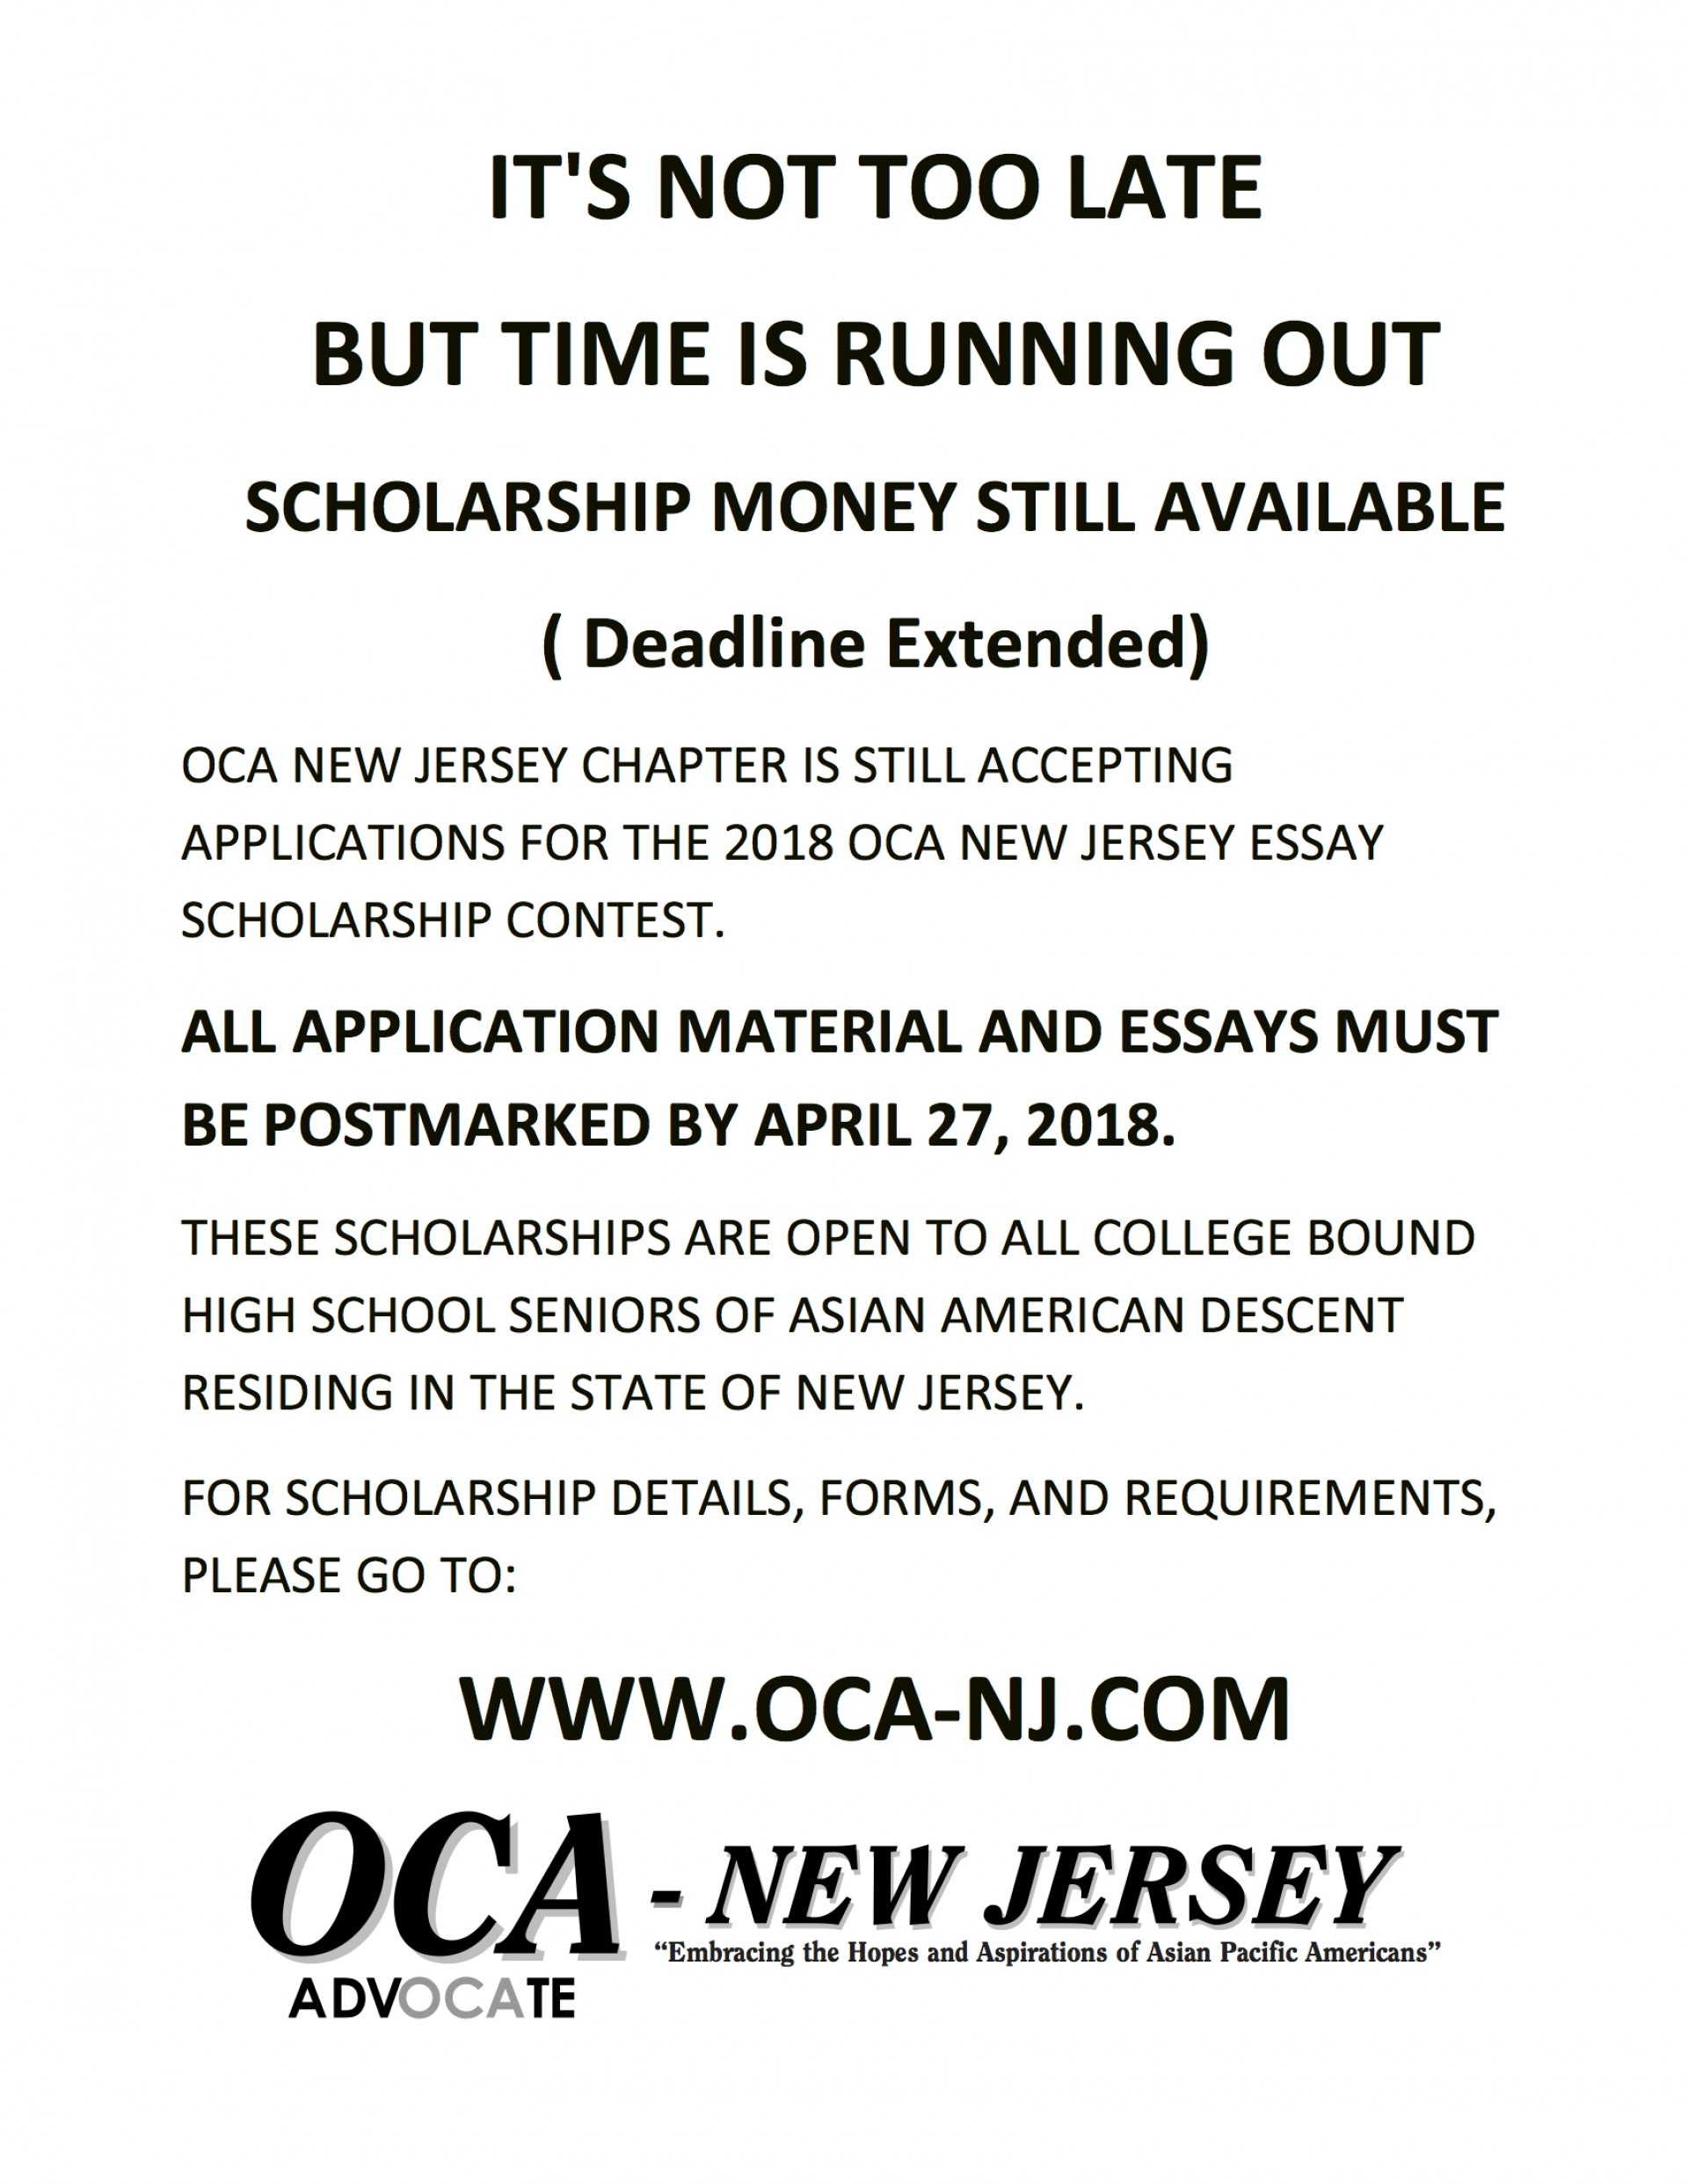 014 Essay Example Scholarships Entended Deadline Oca Nj Shocking For High School Sophomores No 2018 1920